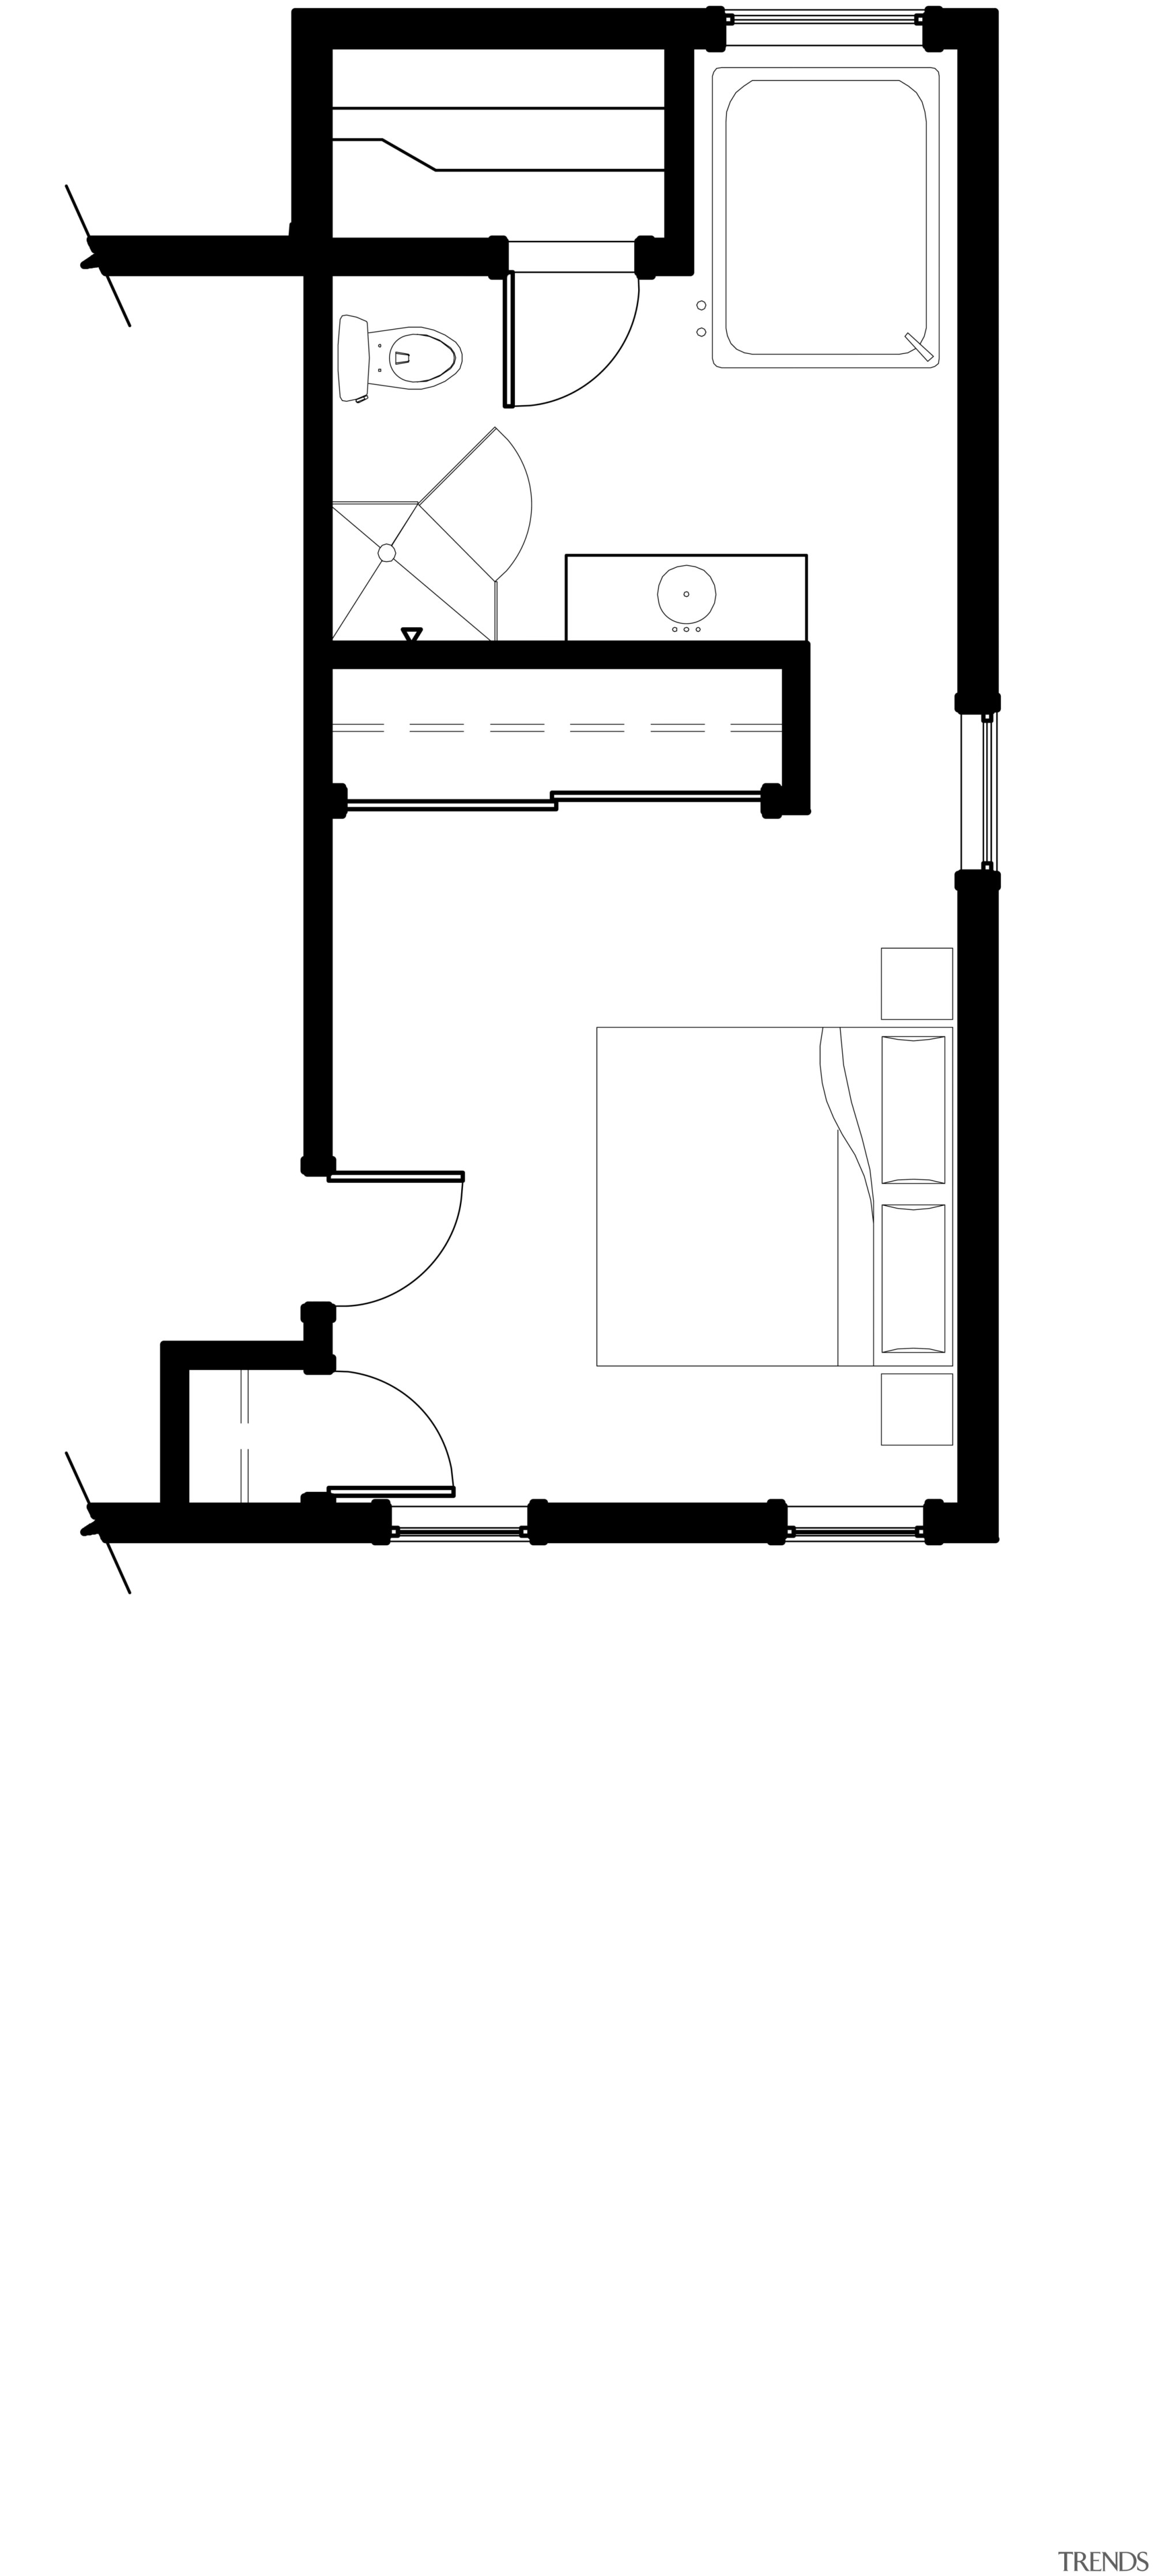 hight resolution of the kitchen features wooden flooring a wooden island appliances cabinetry sinks limestone countertops here is a view of the floor plan